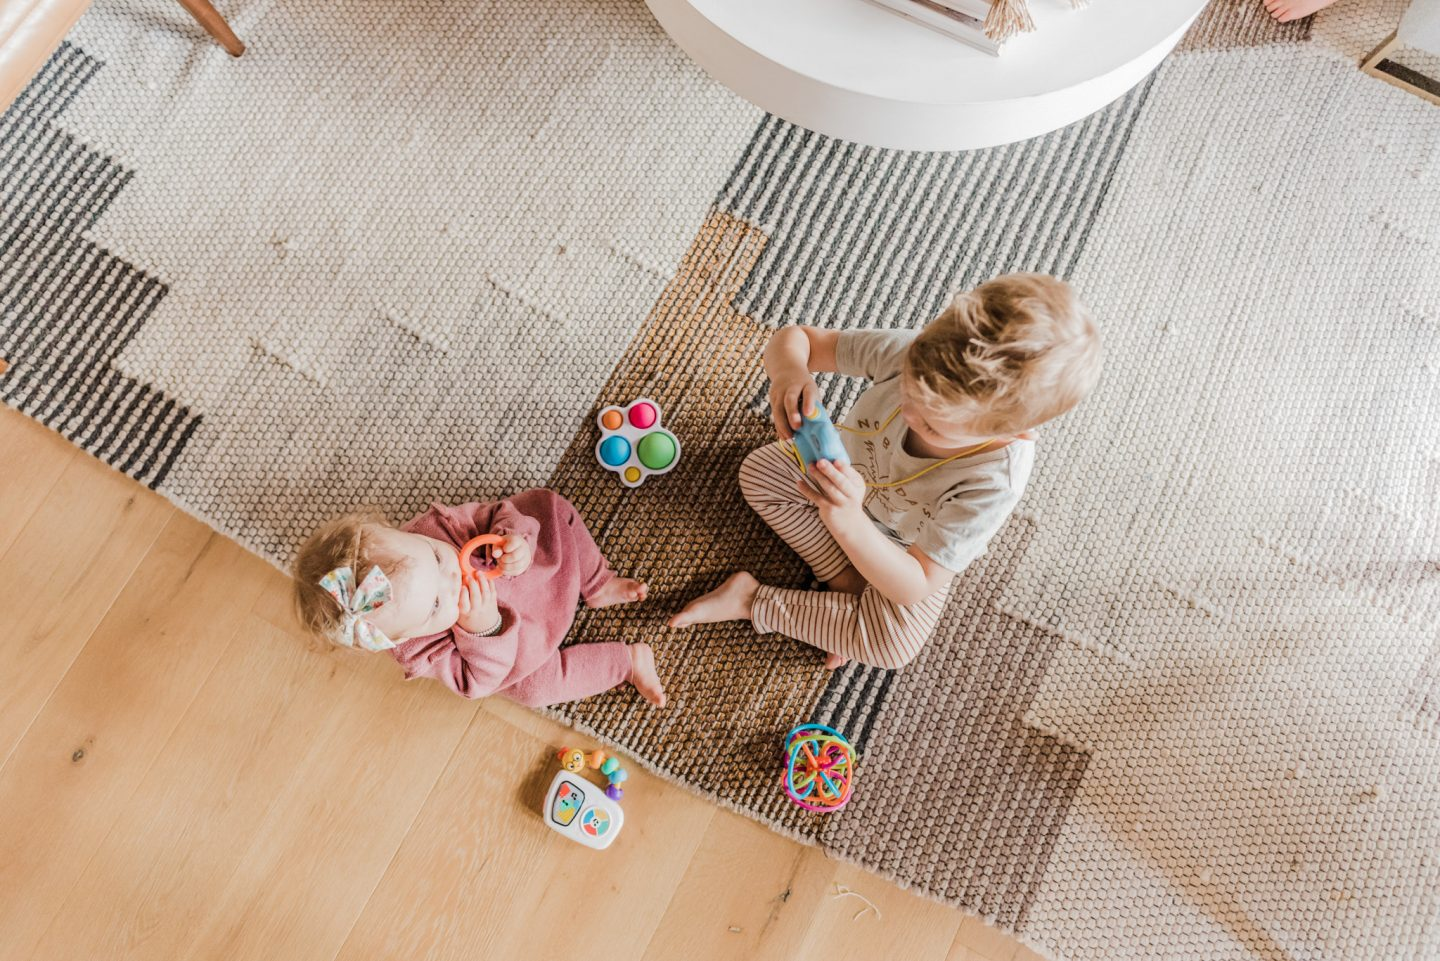 TODDLER EASTER BASKET GIFT IDEAS featured by top San Diego lifestyle blog, Navy Grace | Easter Basket Ideas for Toddlers by popular San Diego lifestyle blog, Navy Grace: image of a little boy sitting on the floor and playing with a camera next to his baby sister who is playing with some baby toys.